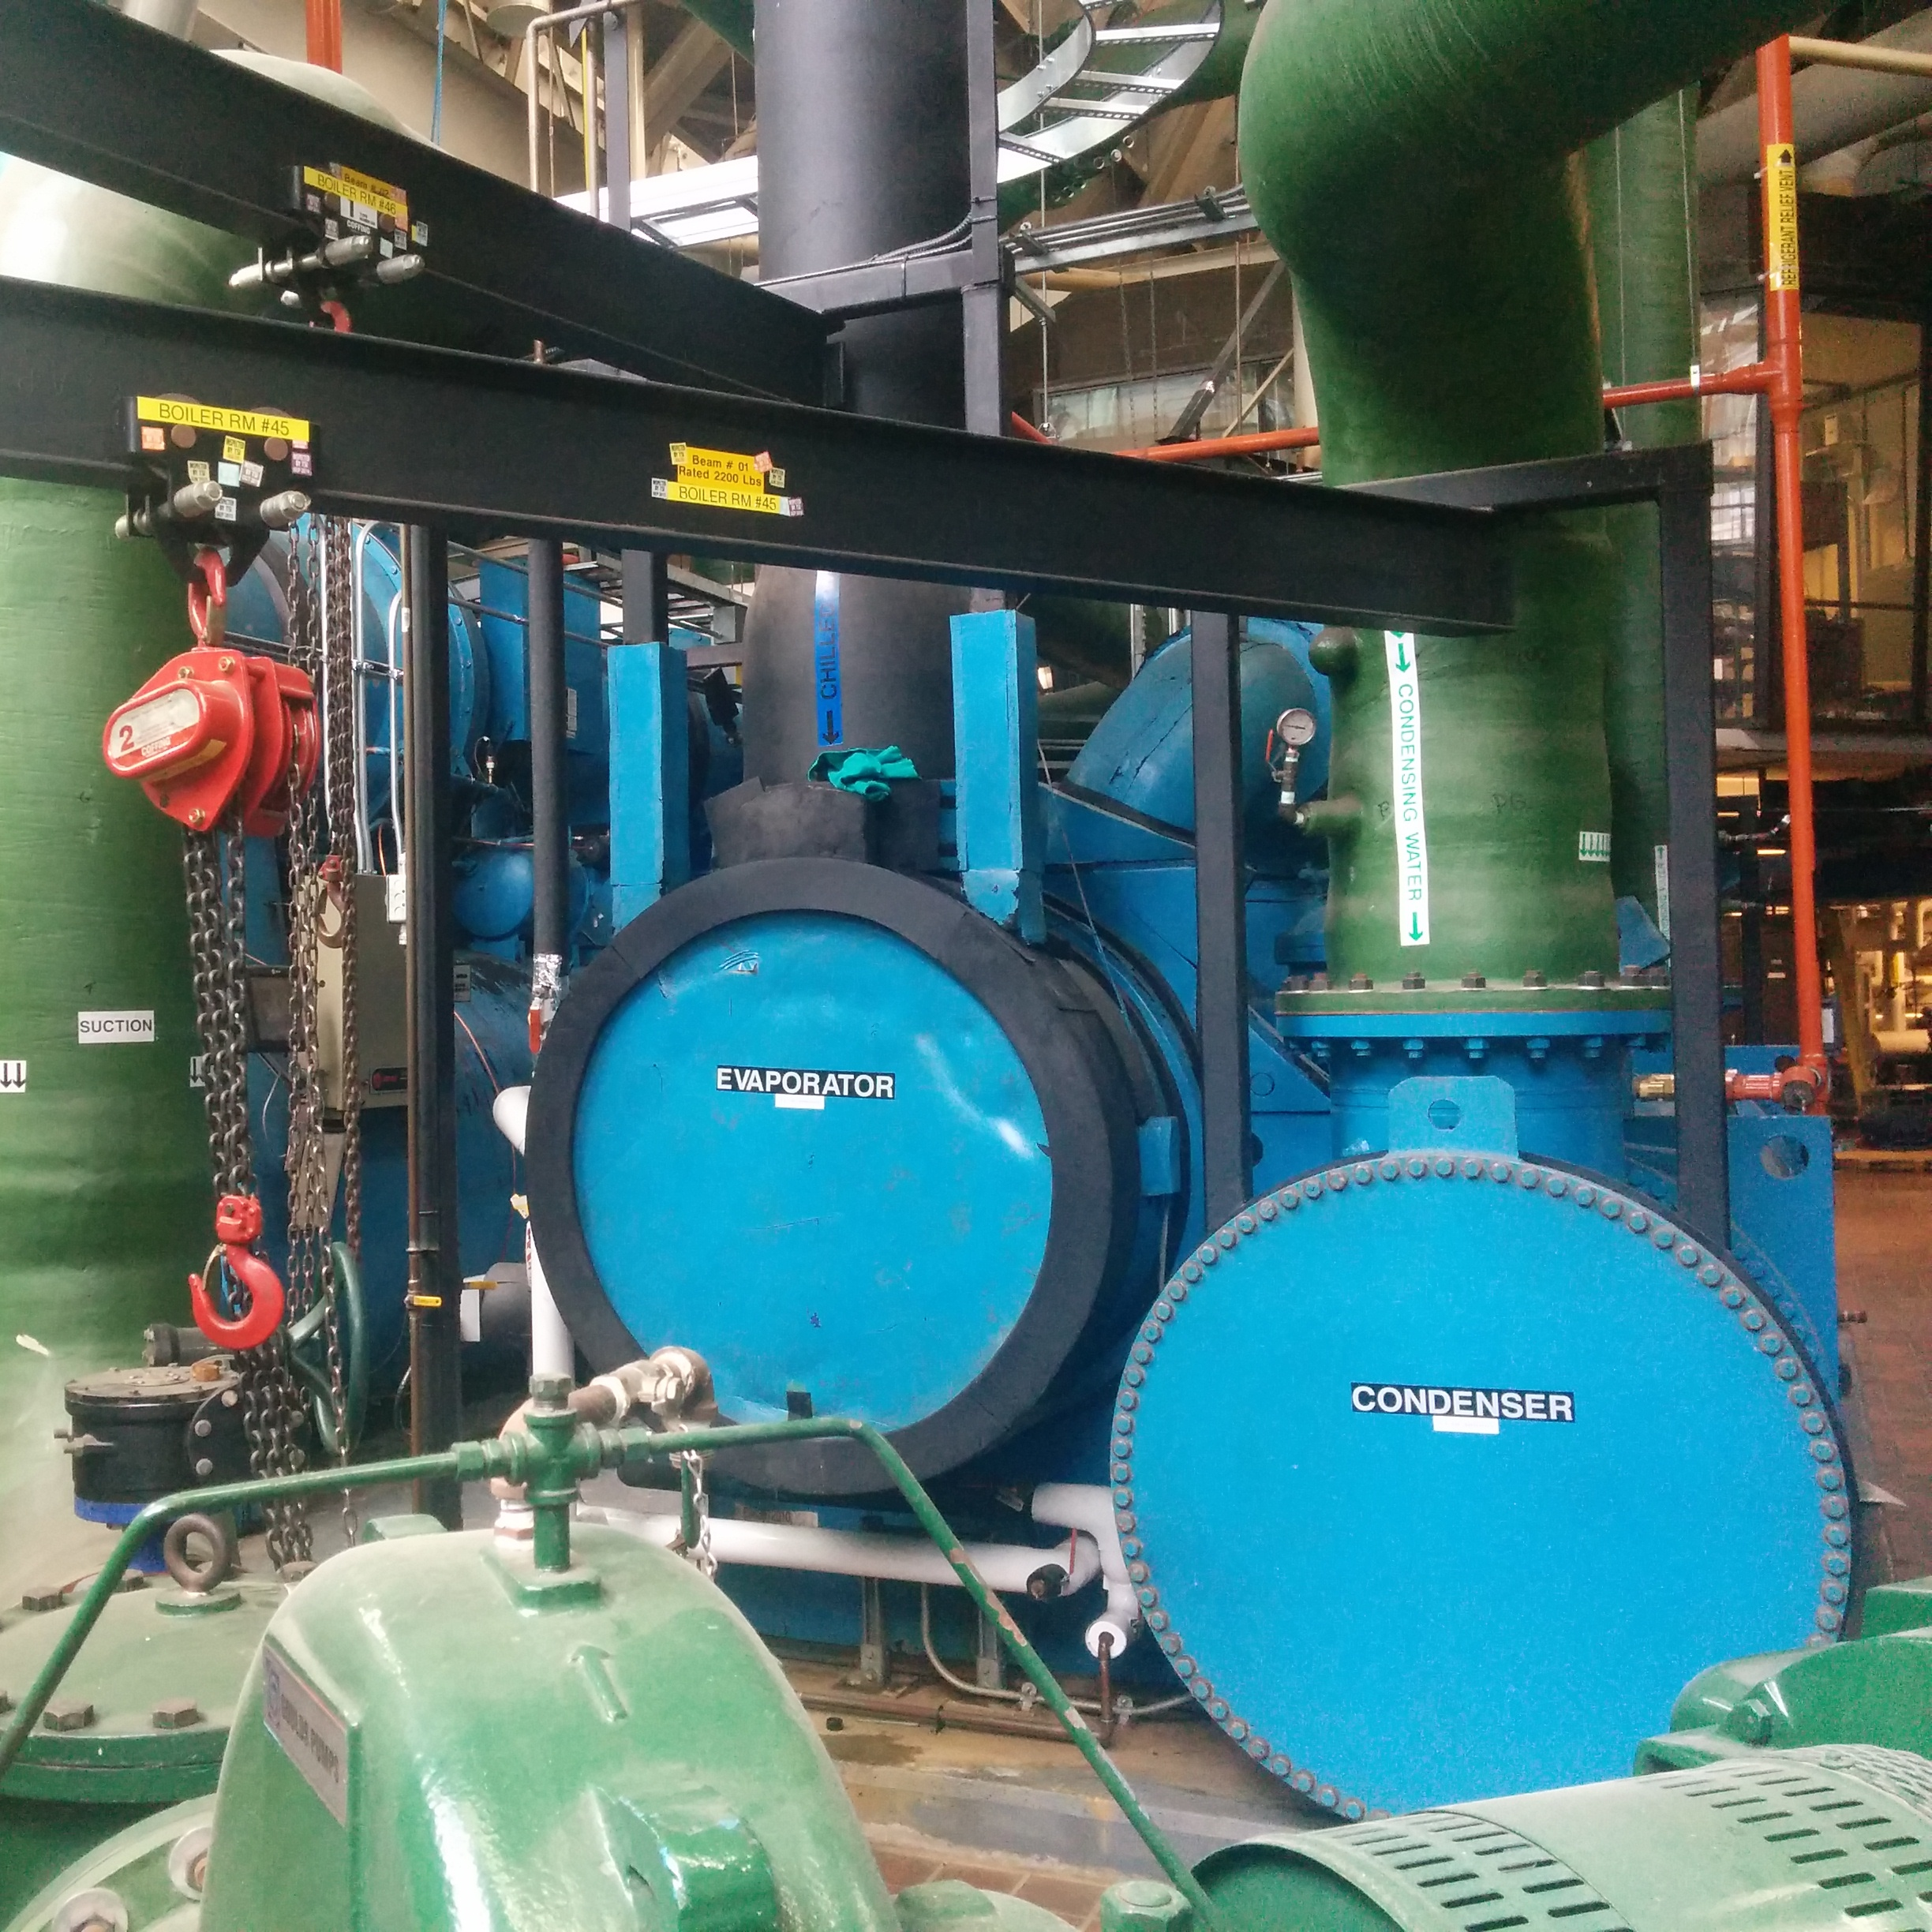 A picture of the power plant's blue chiller system